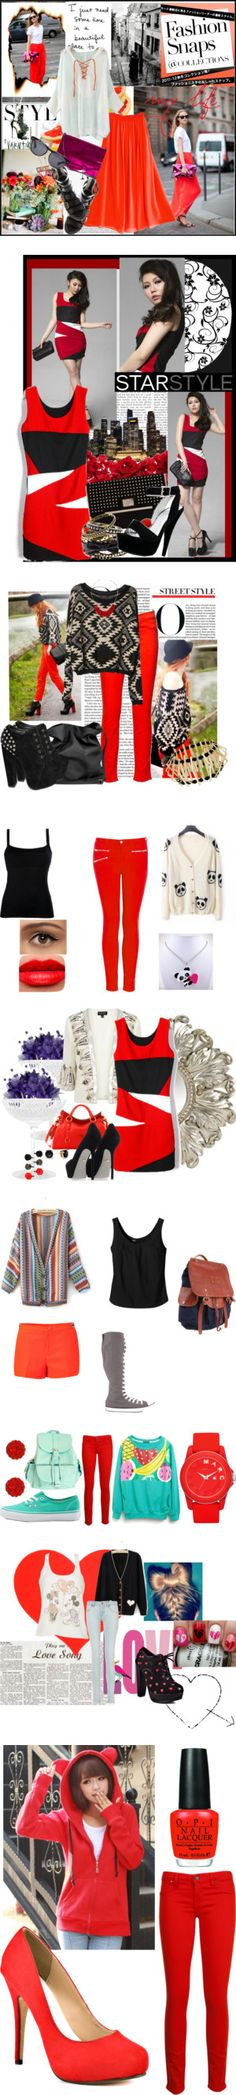 """""""i wanna be perfect"""" by udobuy ❤ liked on Polyvore"""